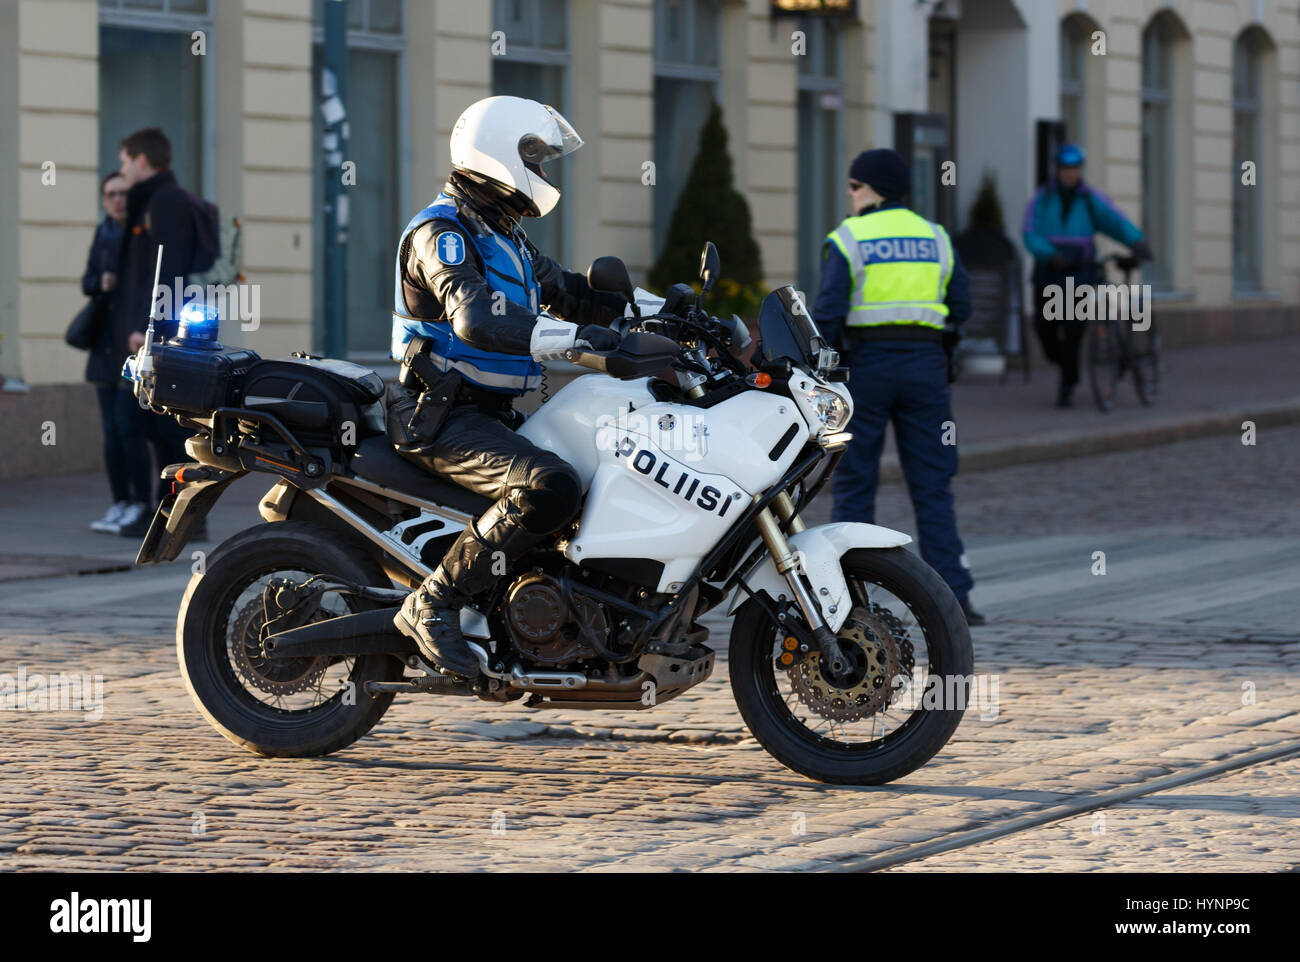 Helsinki, Finland. 5th April, 2017. Motorcycle policeman secures the safety of President Xi Jinping Credit: Hannu - Stock Image